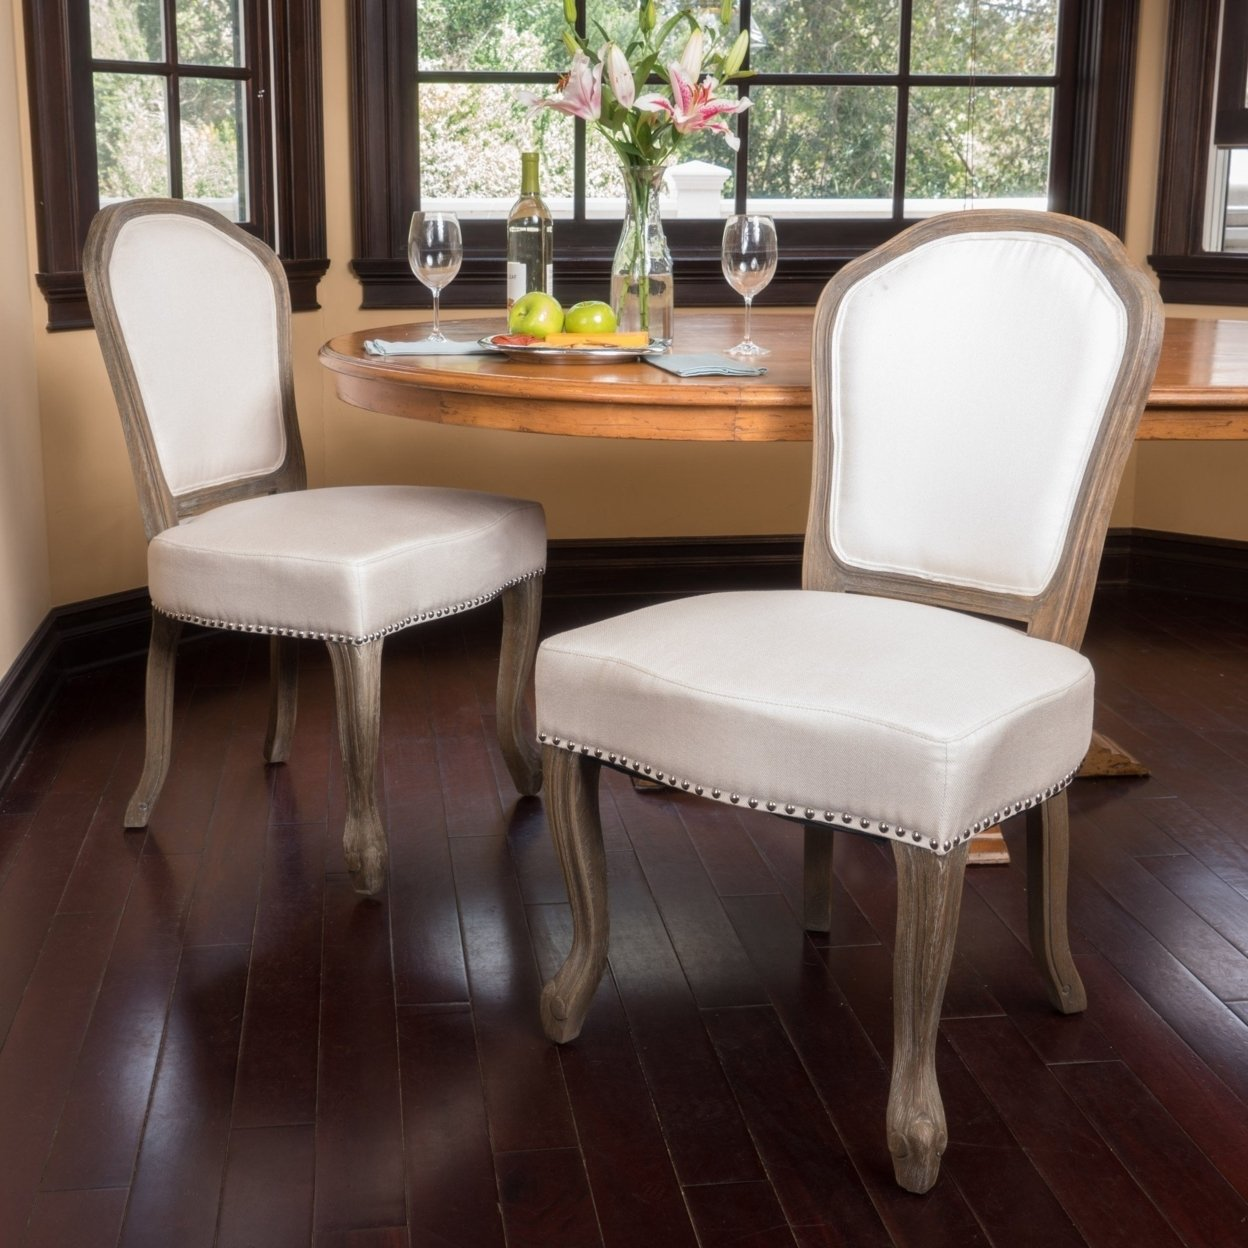 Gondor Classic D+cor Fabric Dining Chair (set Of 2)